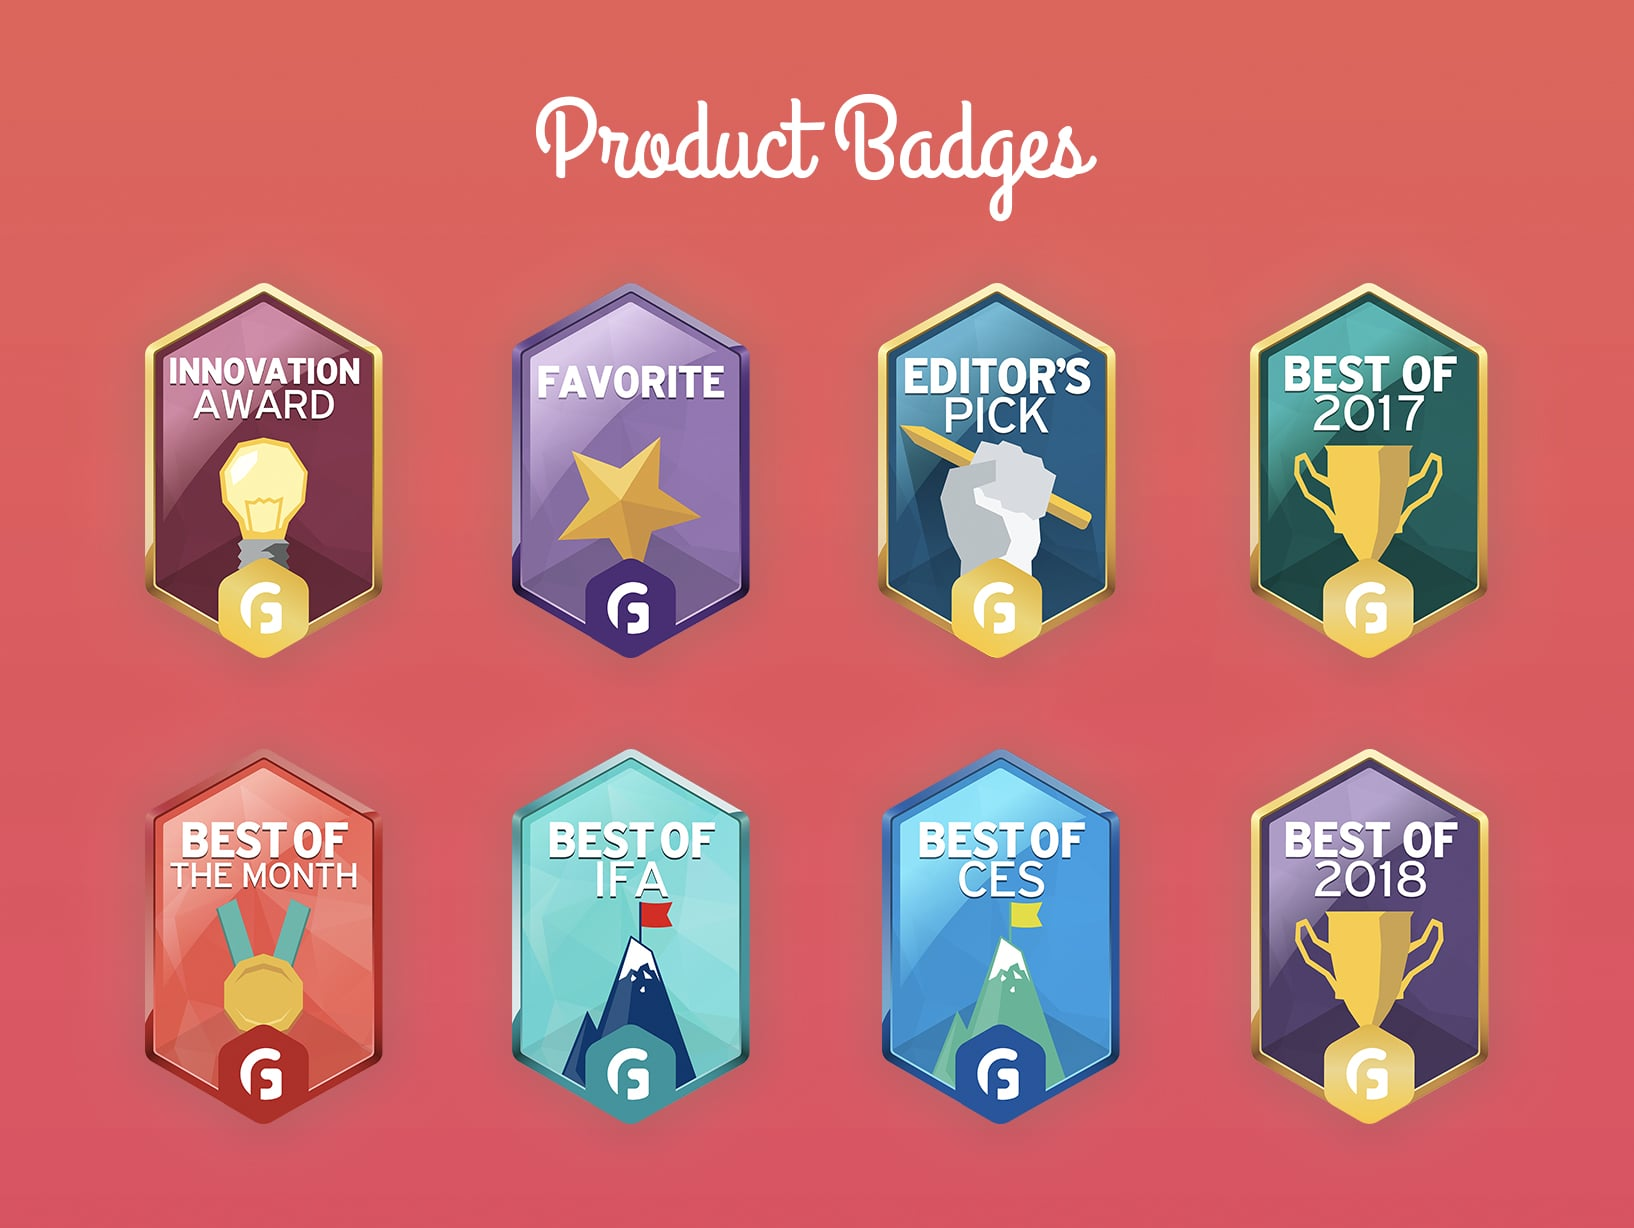 To separate and celebrate those upper echelon products, we're announcing the Gadget Flow Badges.